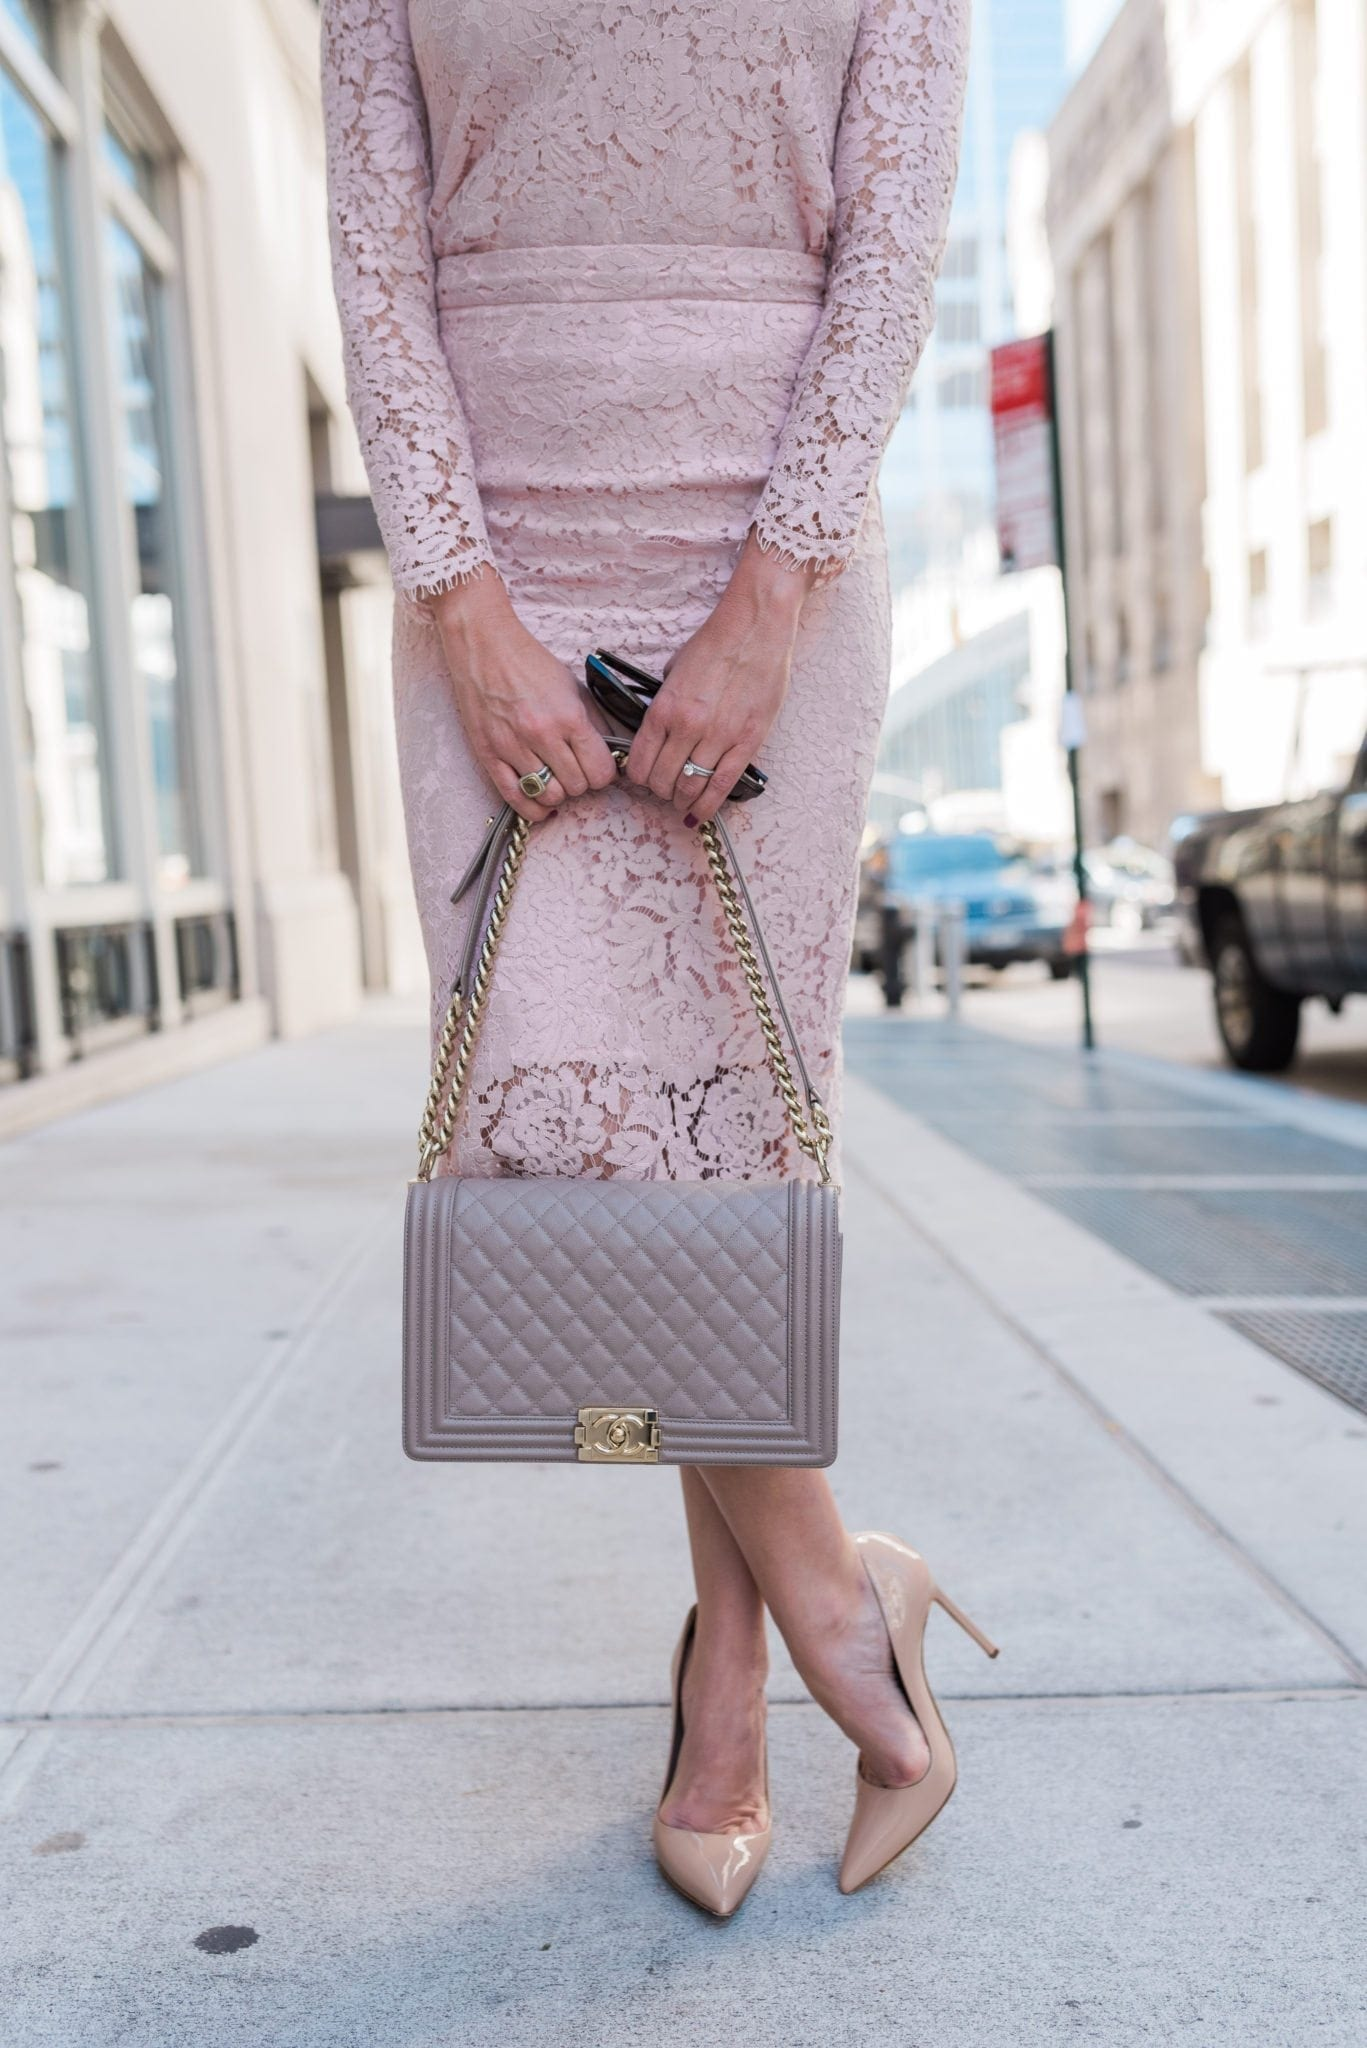 Neutral boy bag chanel and nude patent leather pumps with pink lace pencil skirt.